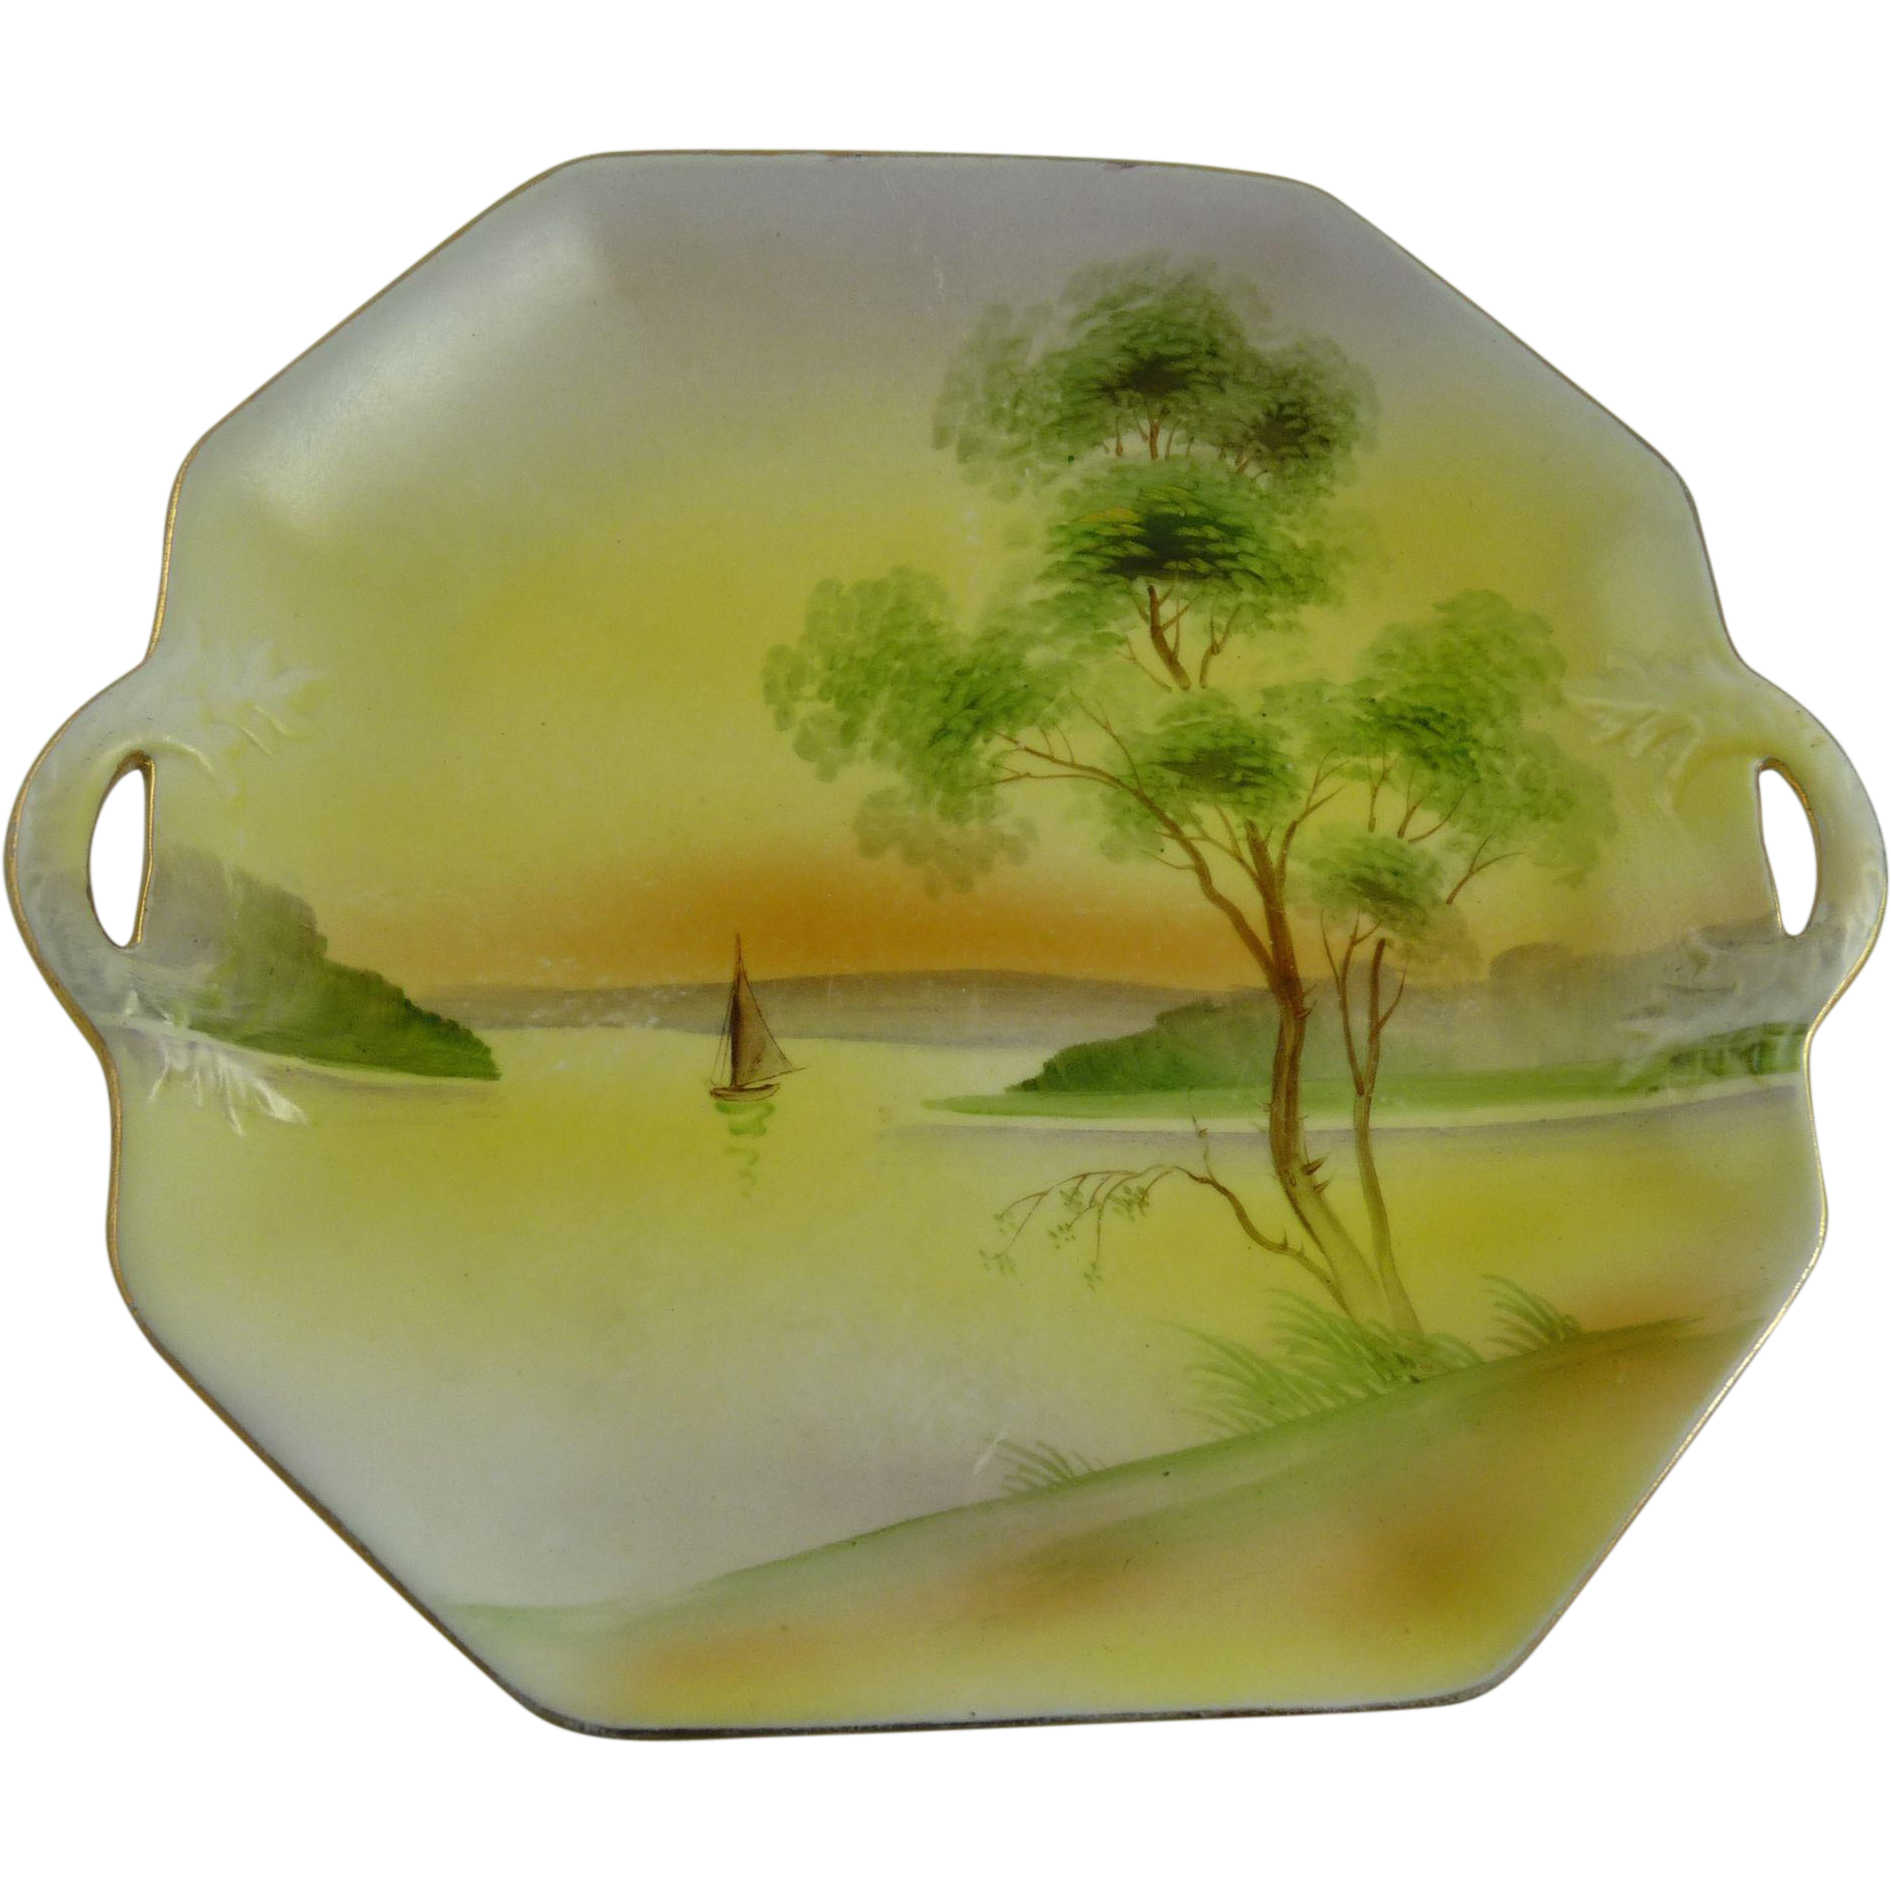 Vintage Nippon Porcelain Serving Plate Two Handled Scenic